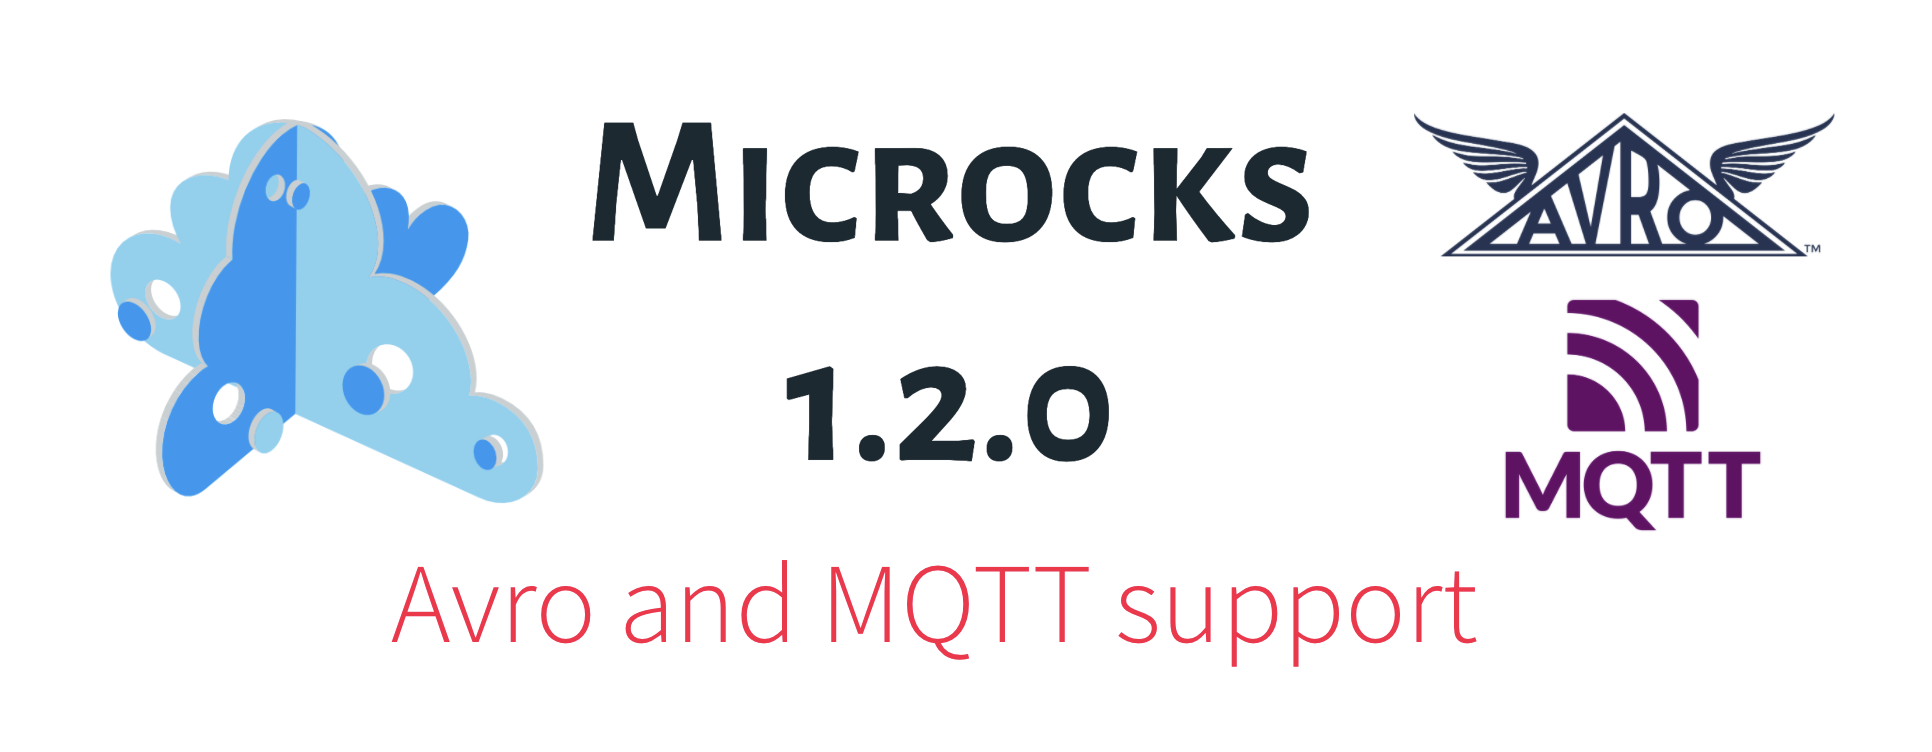 microcks-avro-mqtt